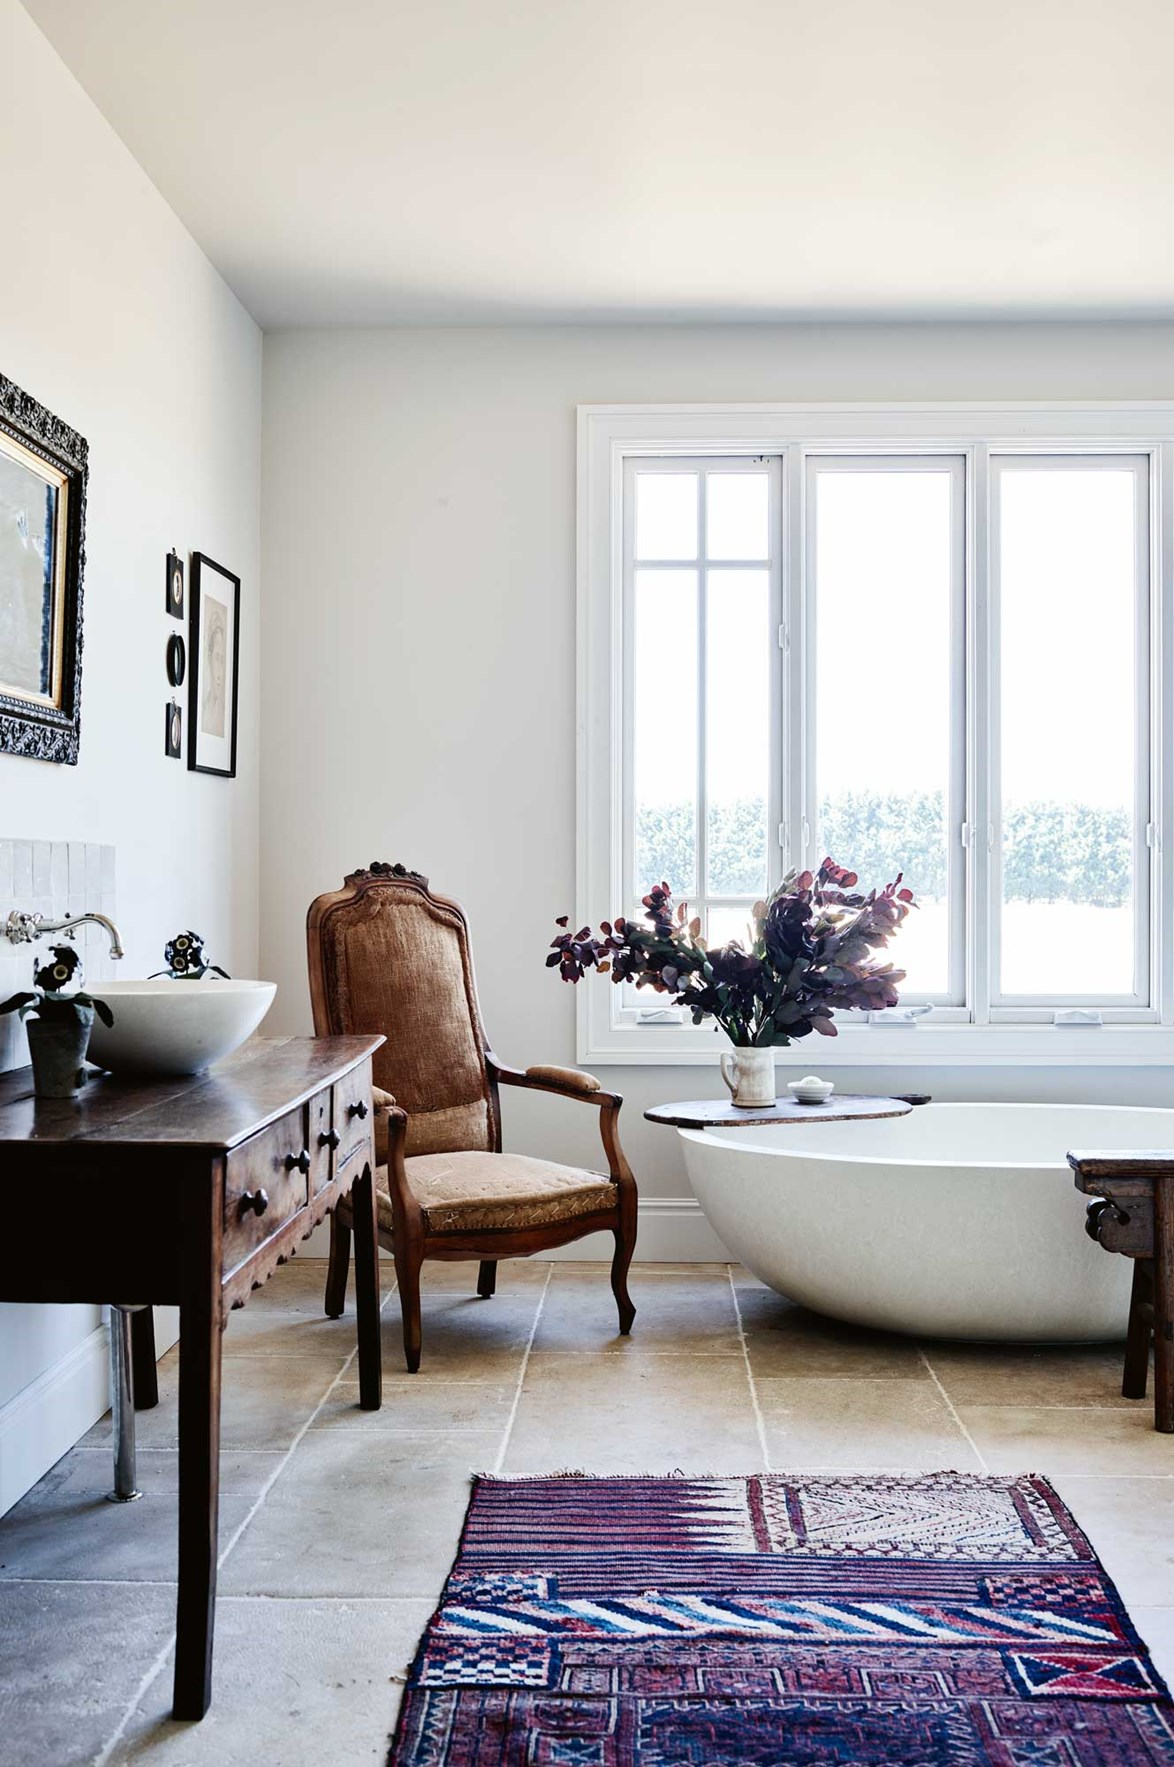 "**Antique flair** - At the start of the year Jonathan Carter from [Victoria + Albert Baths](https://www.homestolove.com.au/bathroom-design-trends-2018-6211 |target=""_blank"") predicted that bathrooms would become more traditional in style. Sure enough, bathrooms sporting antique vanities, and even armchairs, are on the rise. This bathroom in a [country home in the Macedon Ranges](https://www.homestolove.com.au/share-house-a-family-farmhouse-in-the-macedon-ranges-14014